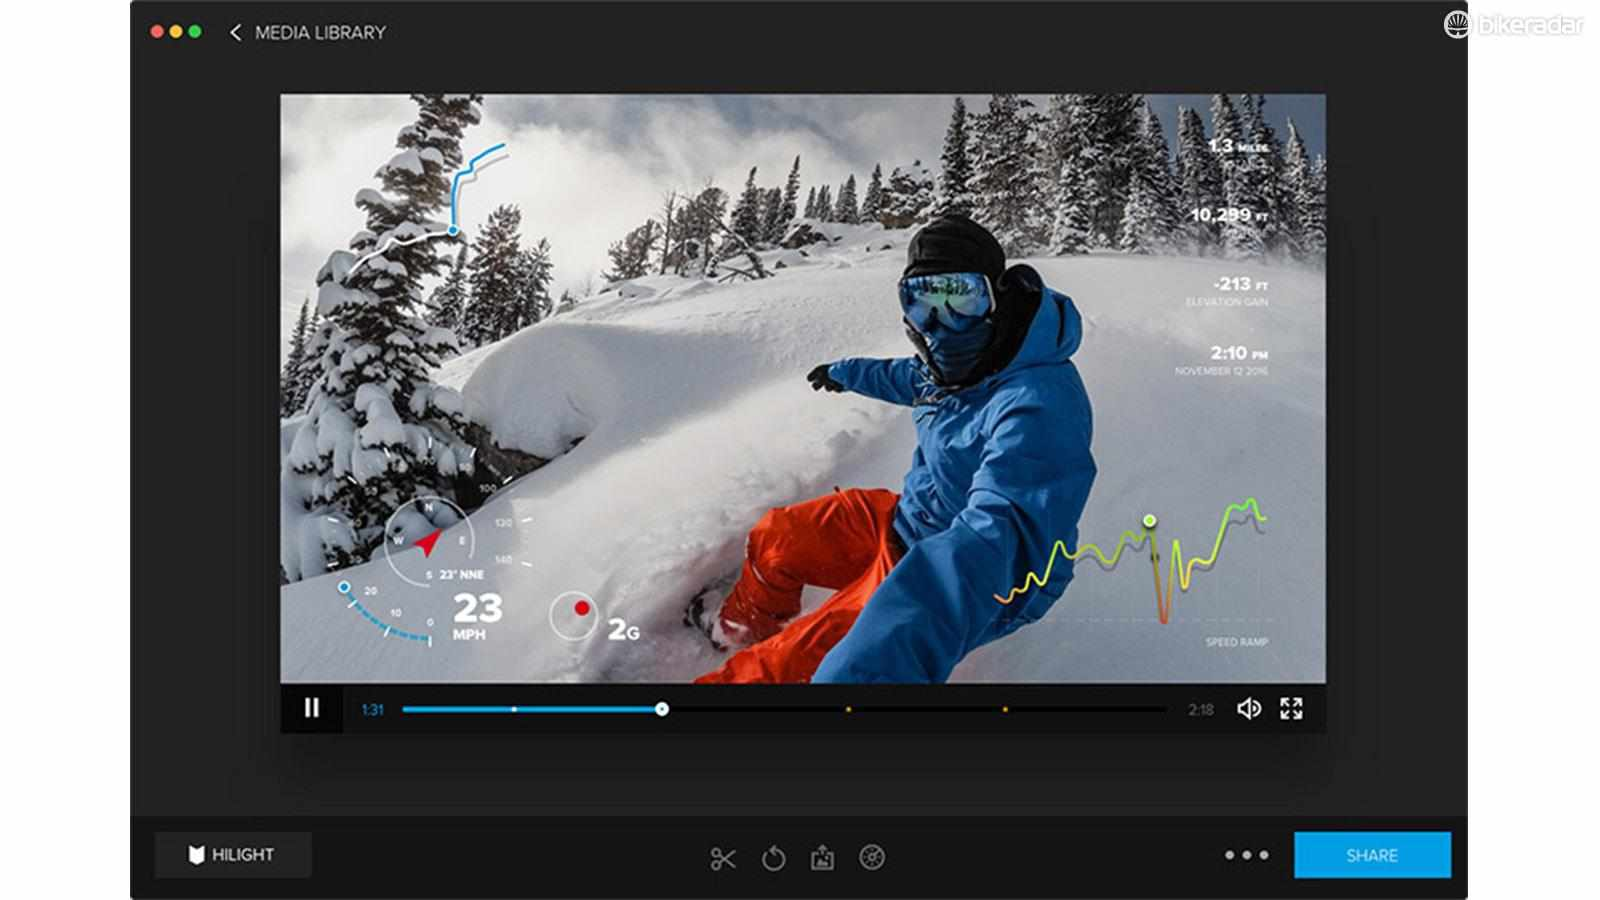 GoPro Hero 5 Black owners now have the option to display data from activities when editing footage with Quik